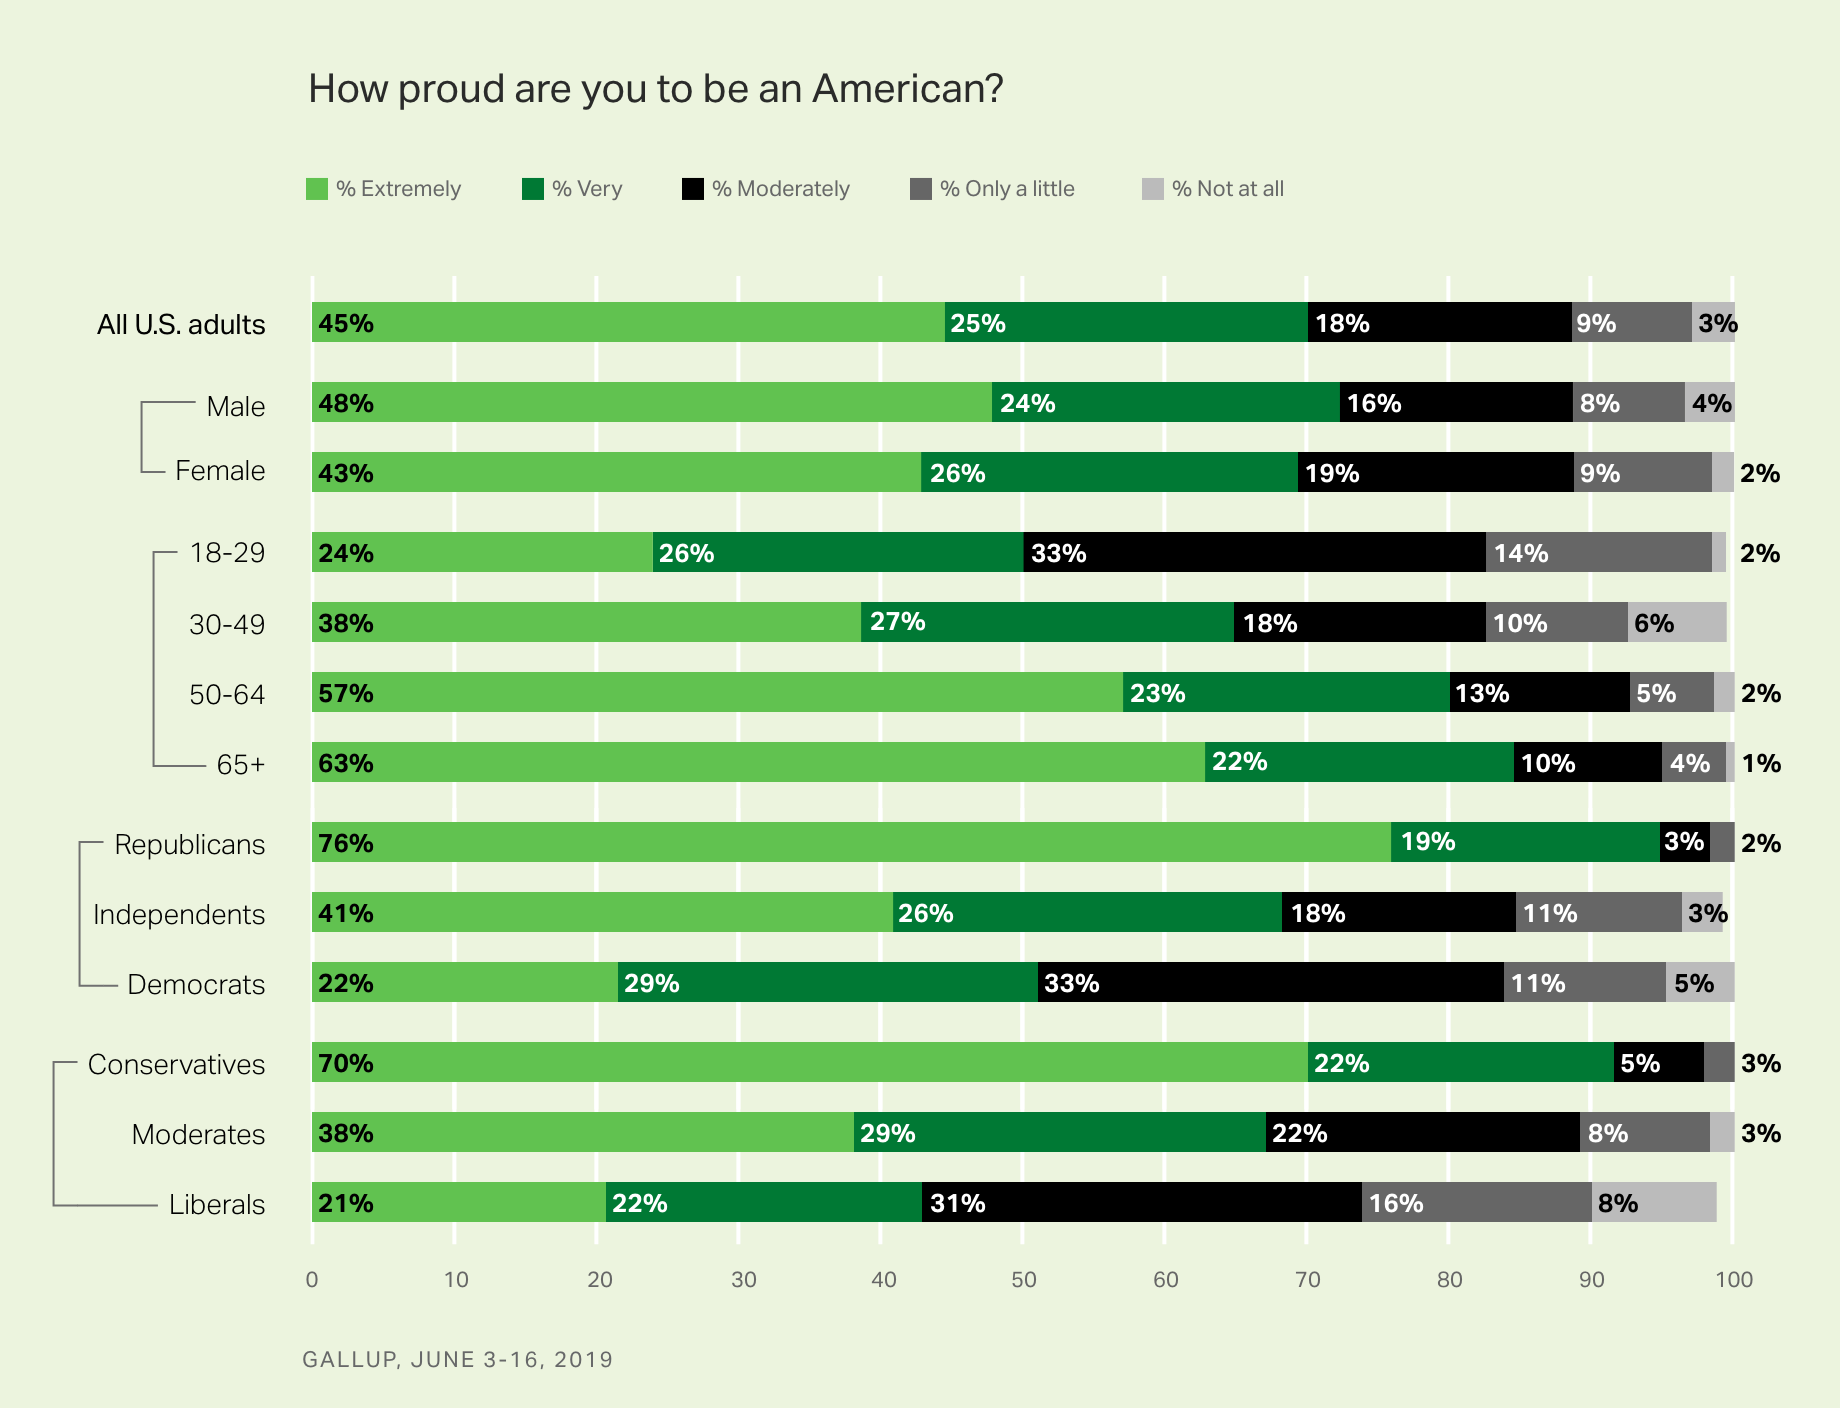 Bar chart. Pride in being an American among major subgroups.